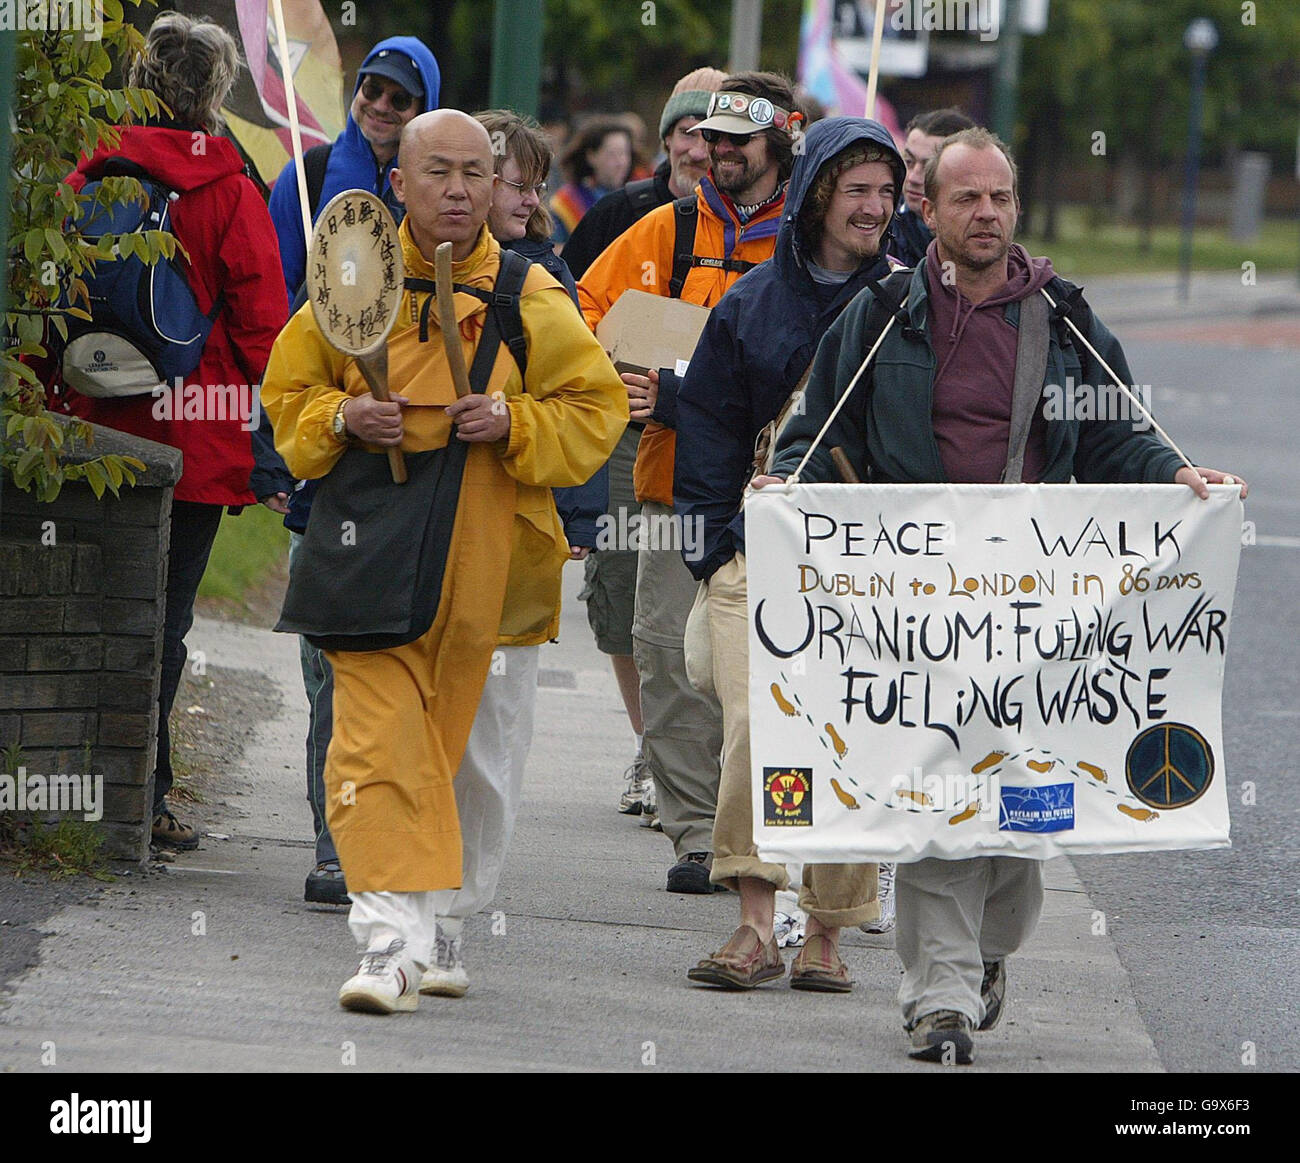 'Towards a Nuclear Free Future' protest walk - Stock Image